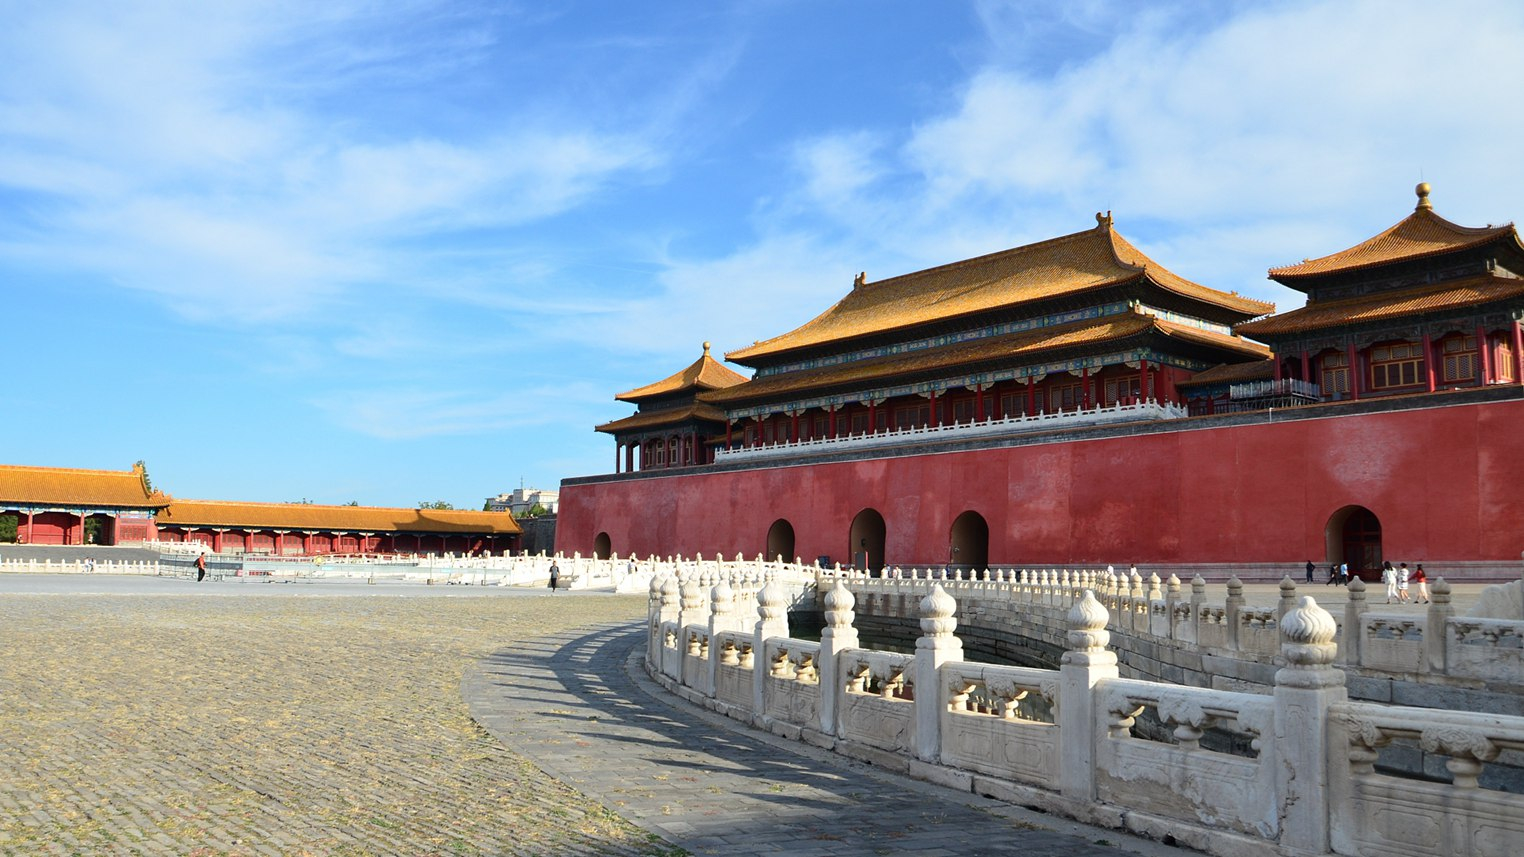 Hong Kong Palace Museum to open in mid-2022